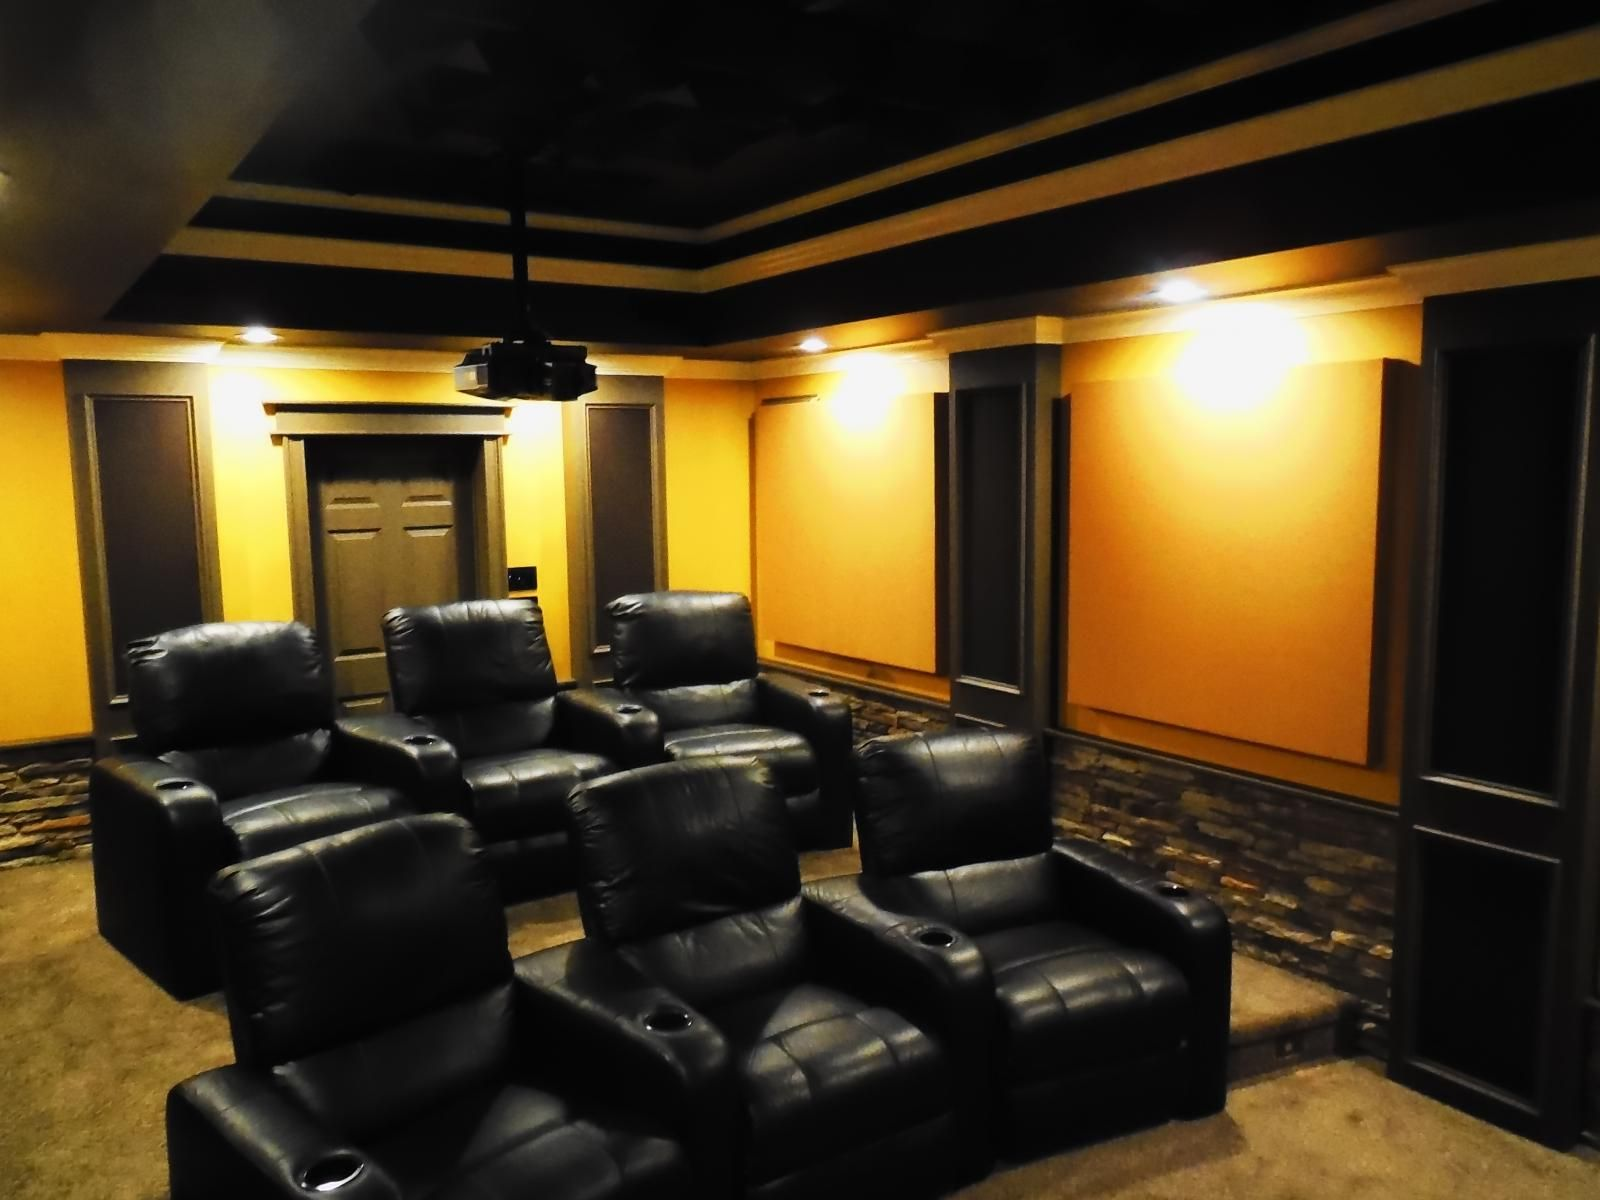 Creekside Stone Cinema   AVS Forum | Home Theater Discussions And Reviews